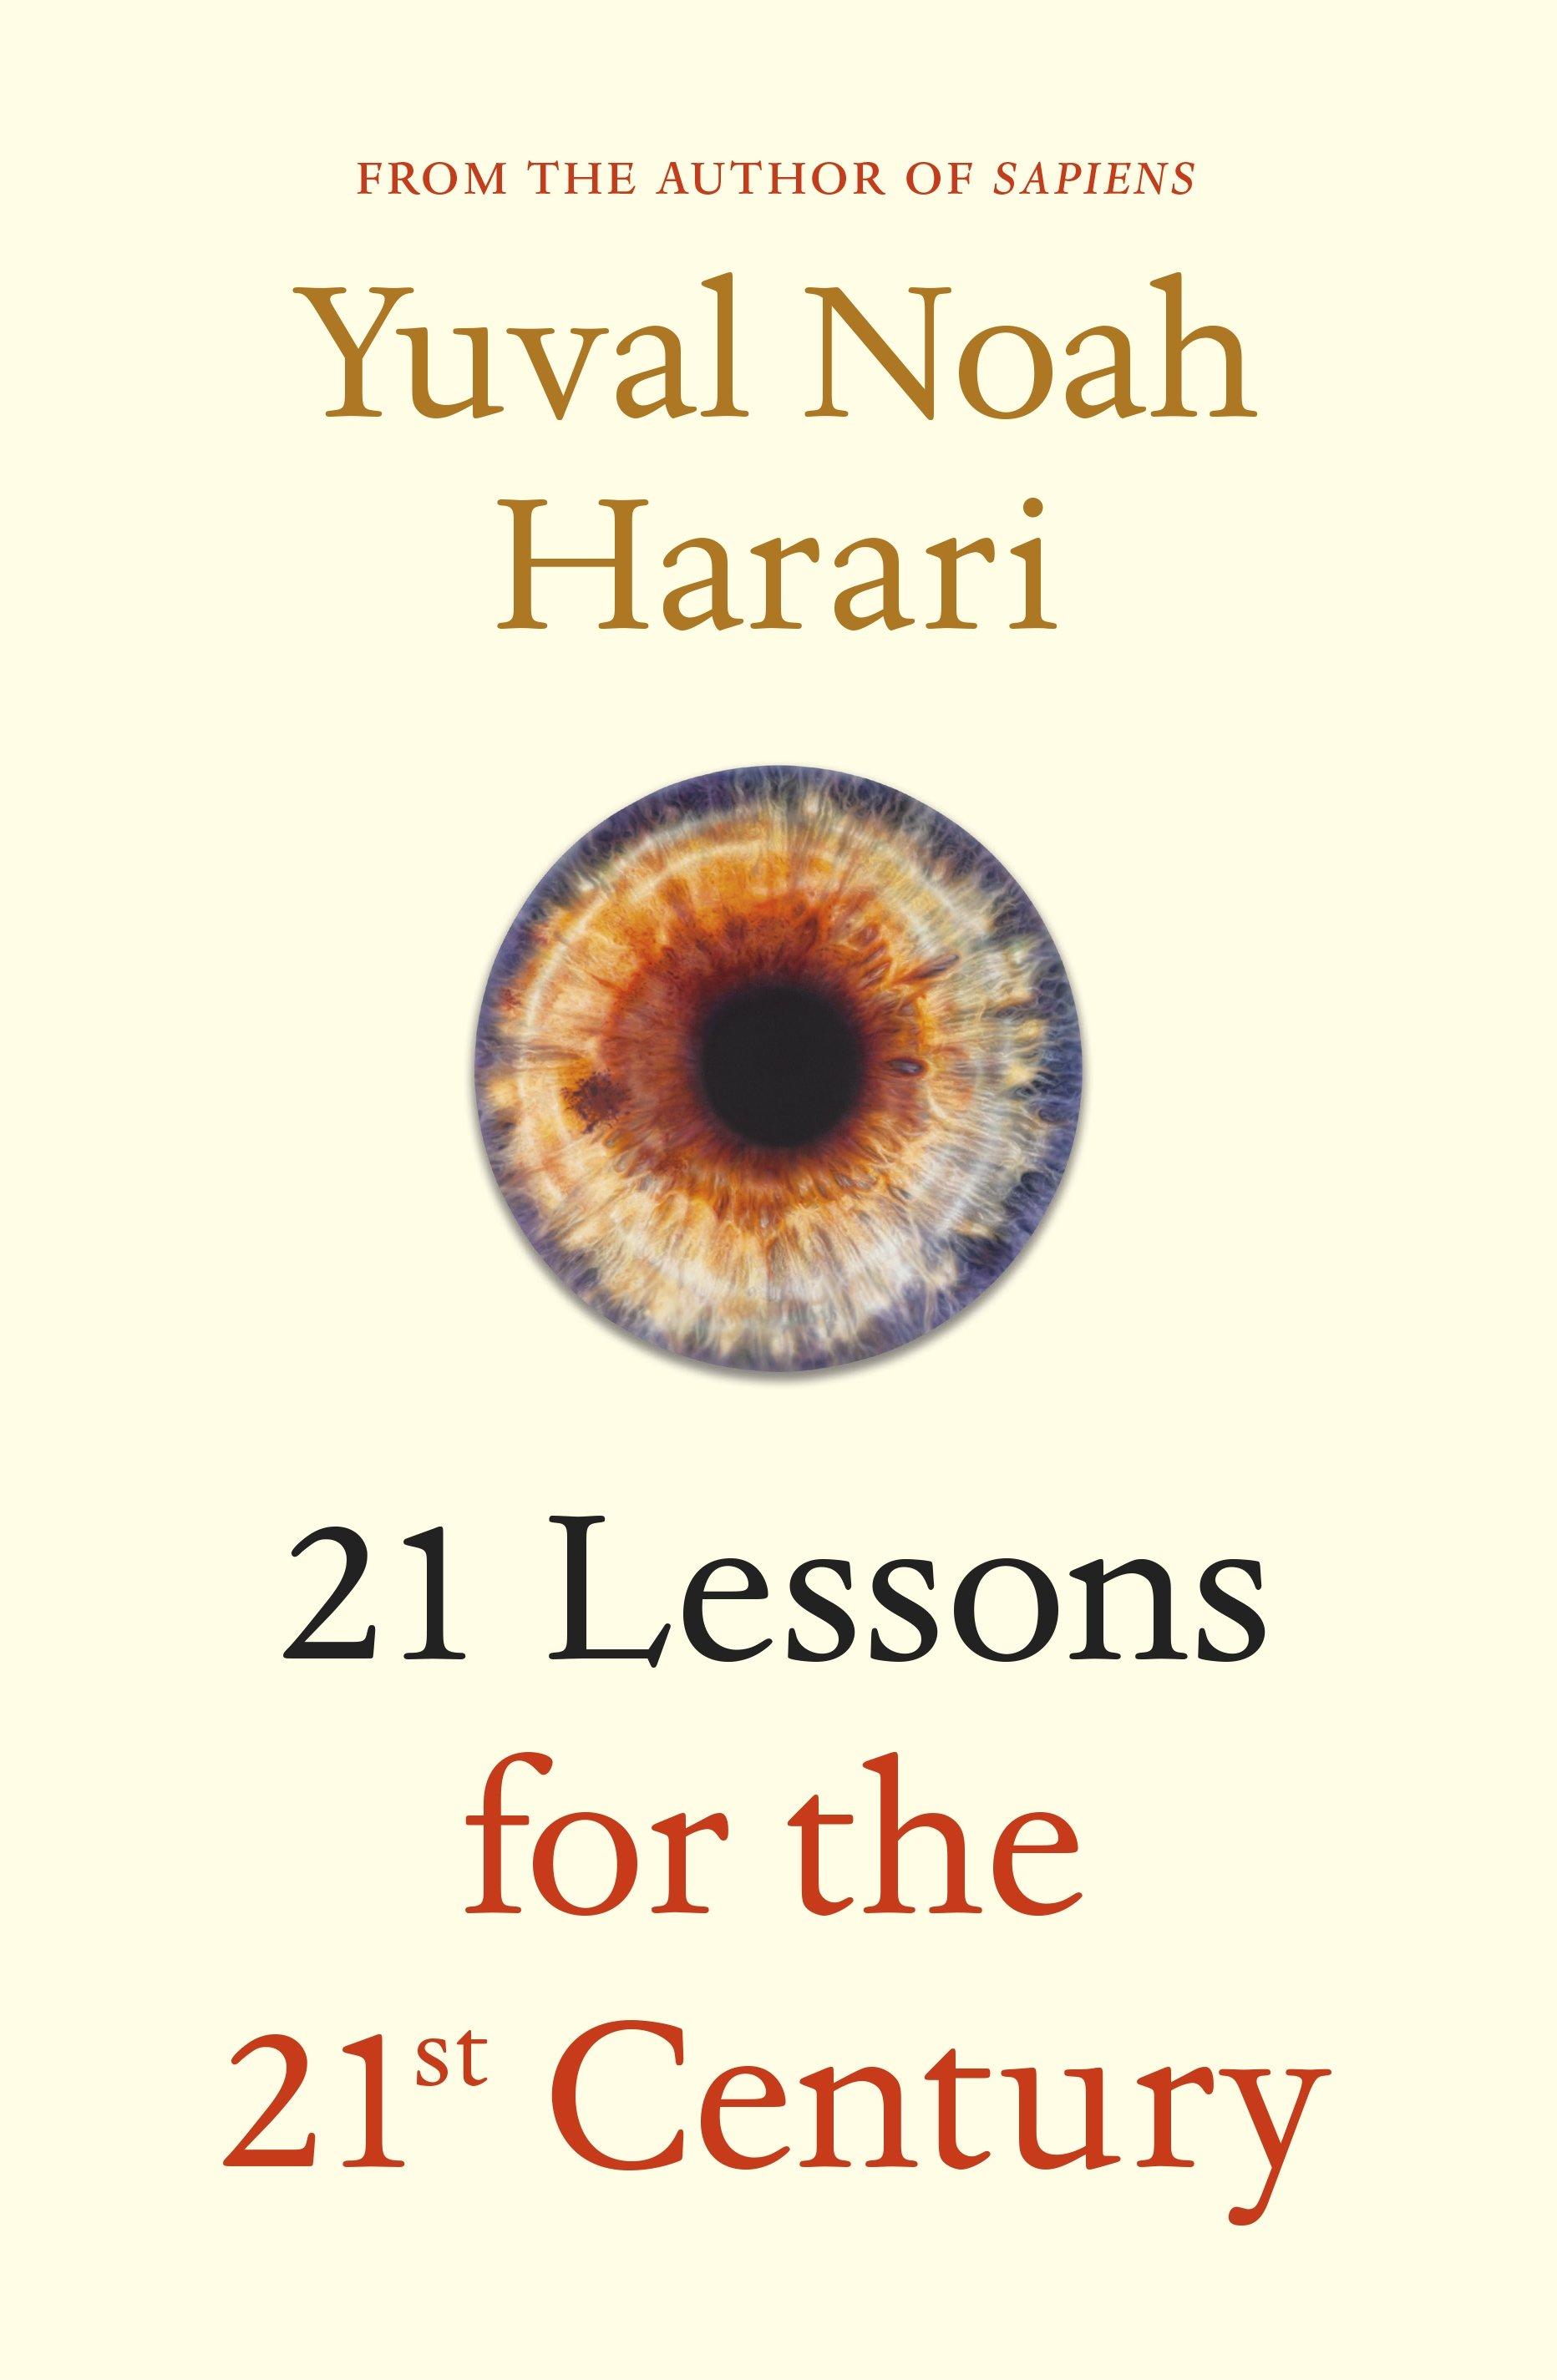 21 Lessons for the 21st Centuryby Yuval Noah Harari